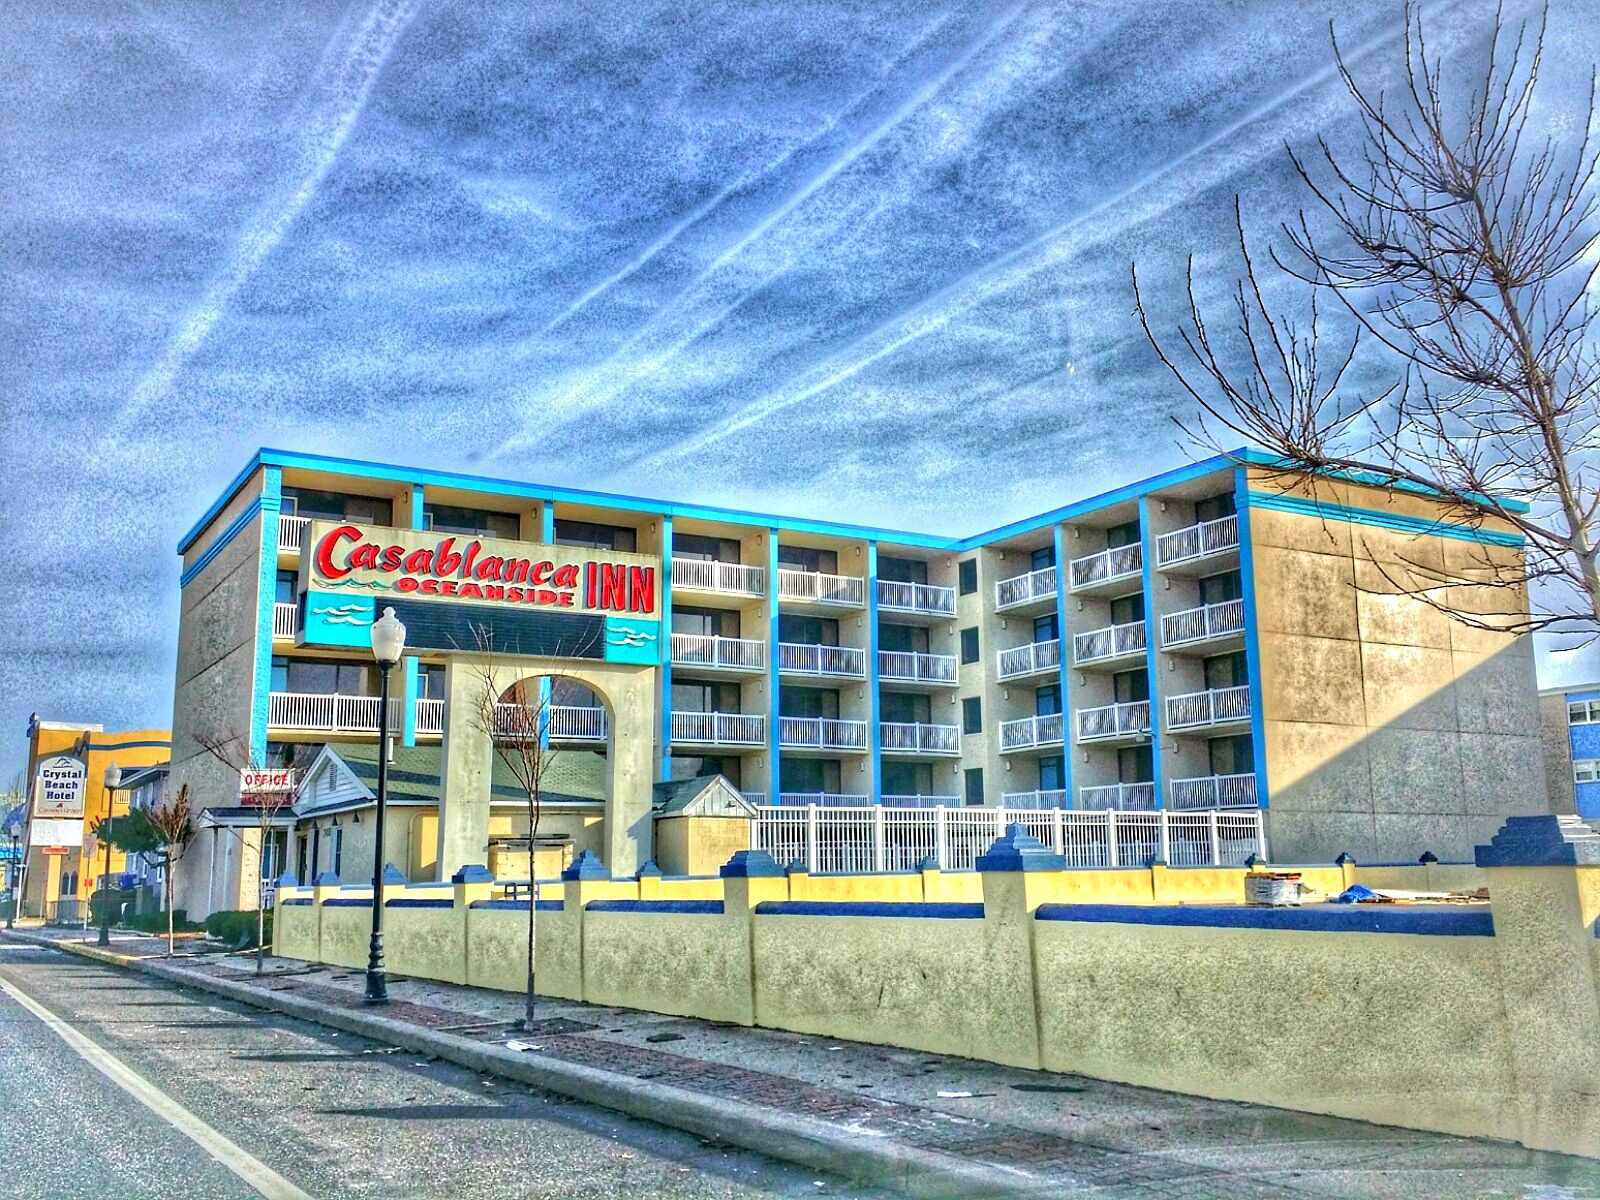 Iconic Beach Motels And Landmarks Of Ocean City Maryland Ocean City Ocean City Maryland Ocean